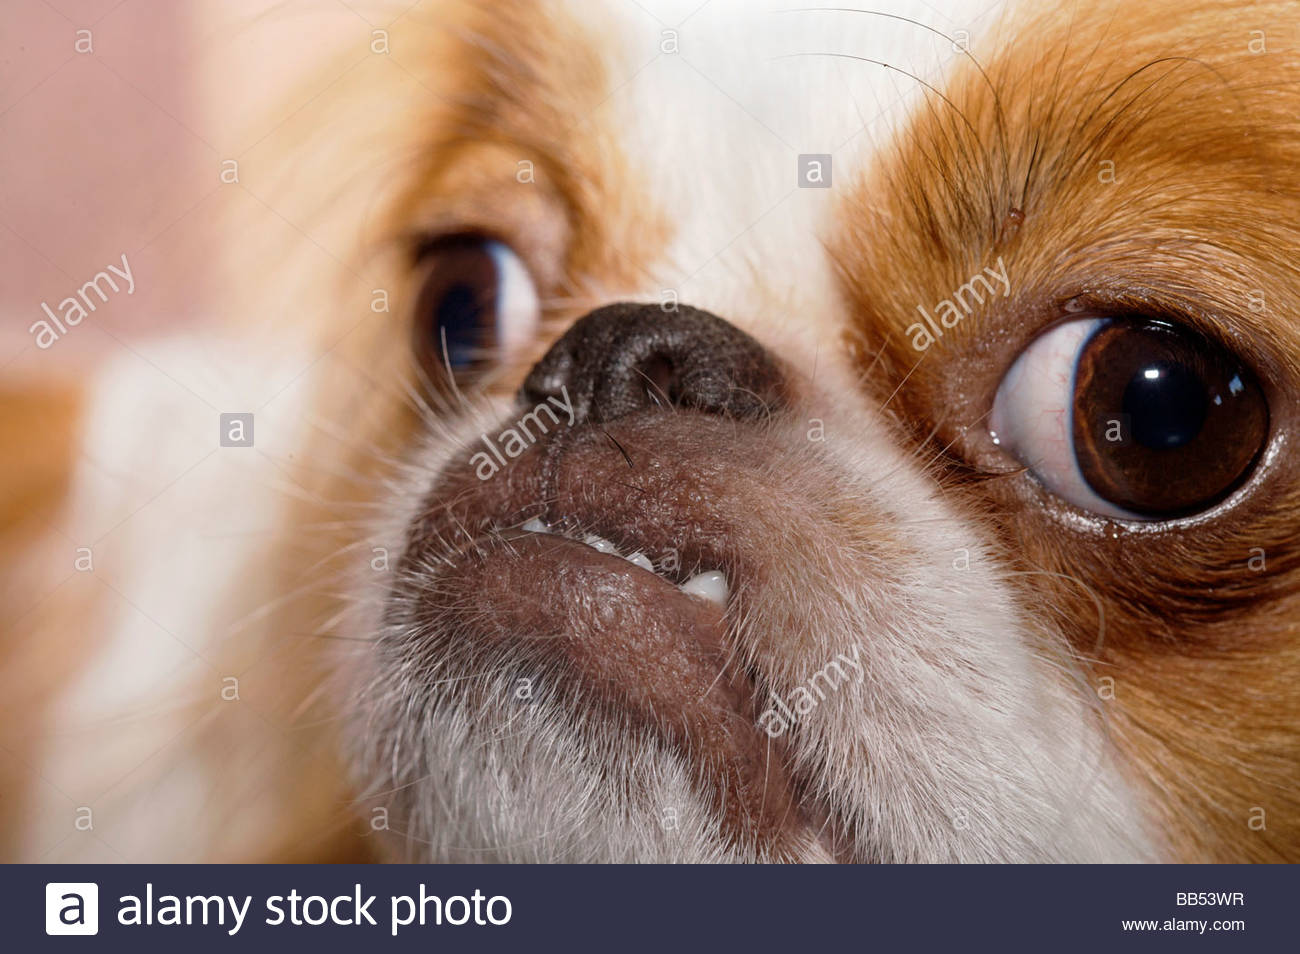 Little dog pulling a funny face stock photo 24084419 alamy little dog pulling a funny face voltagebd Image collections